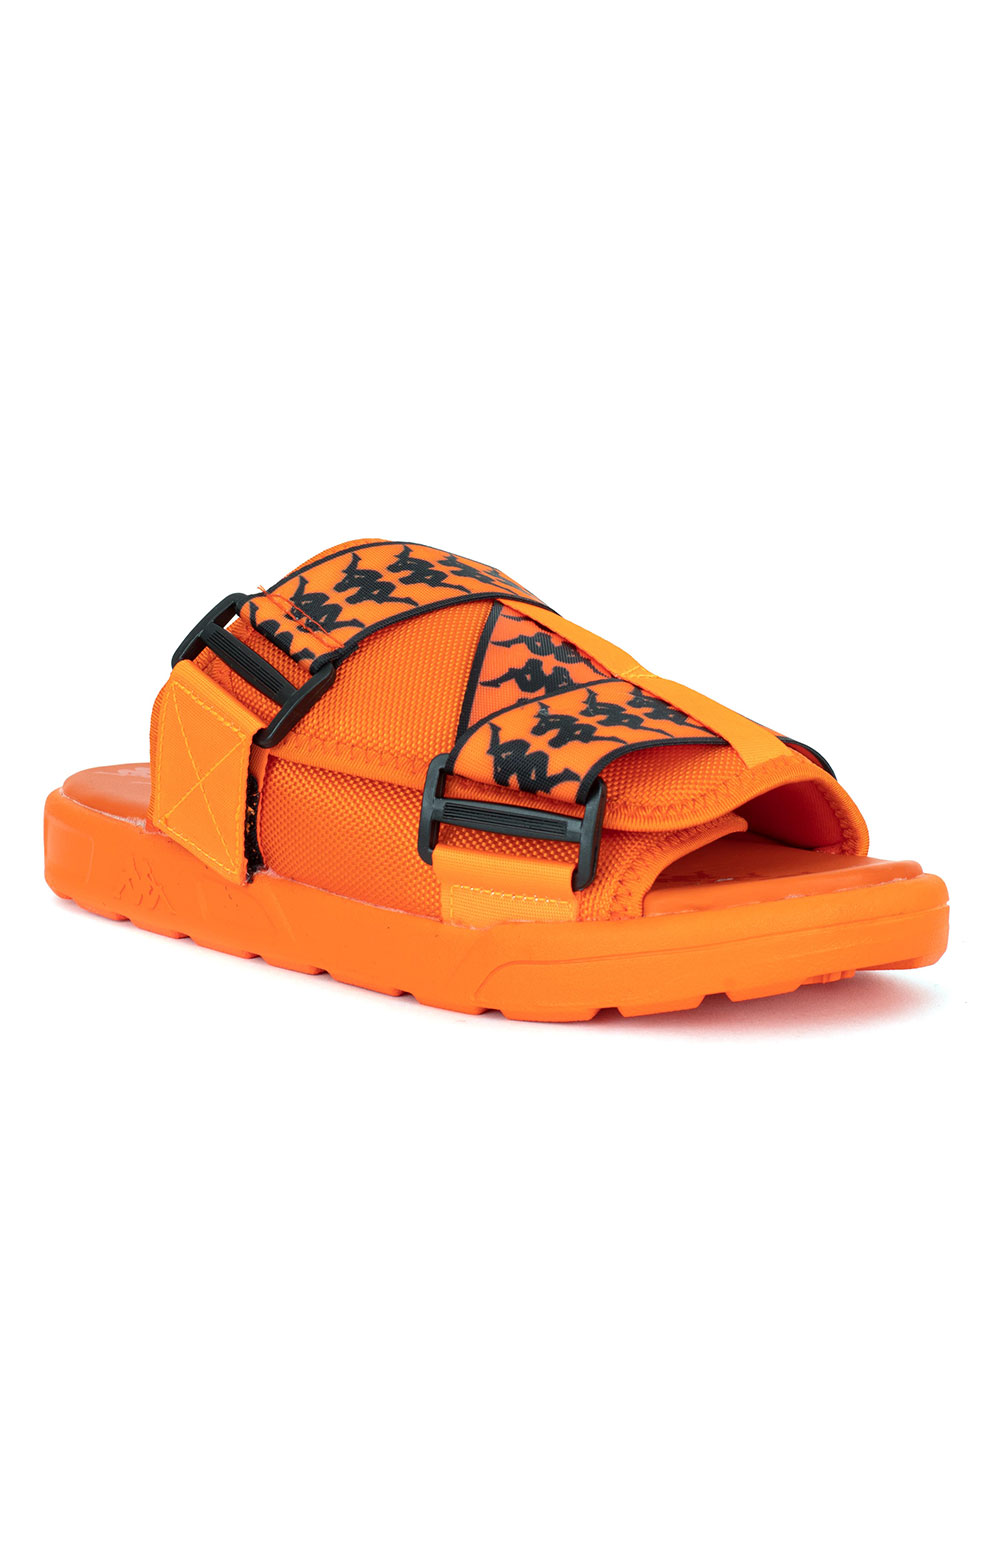 222 Banda Mitel 1 Sandals - Orange/Black